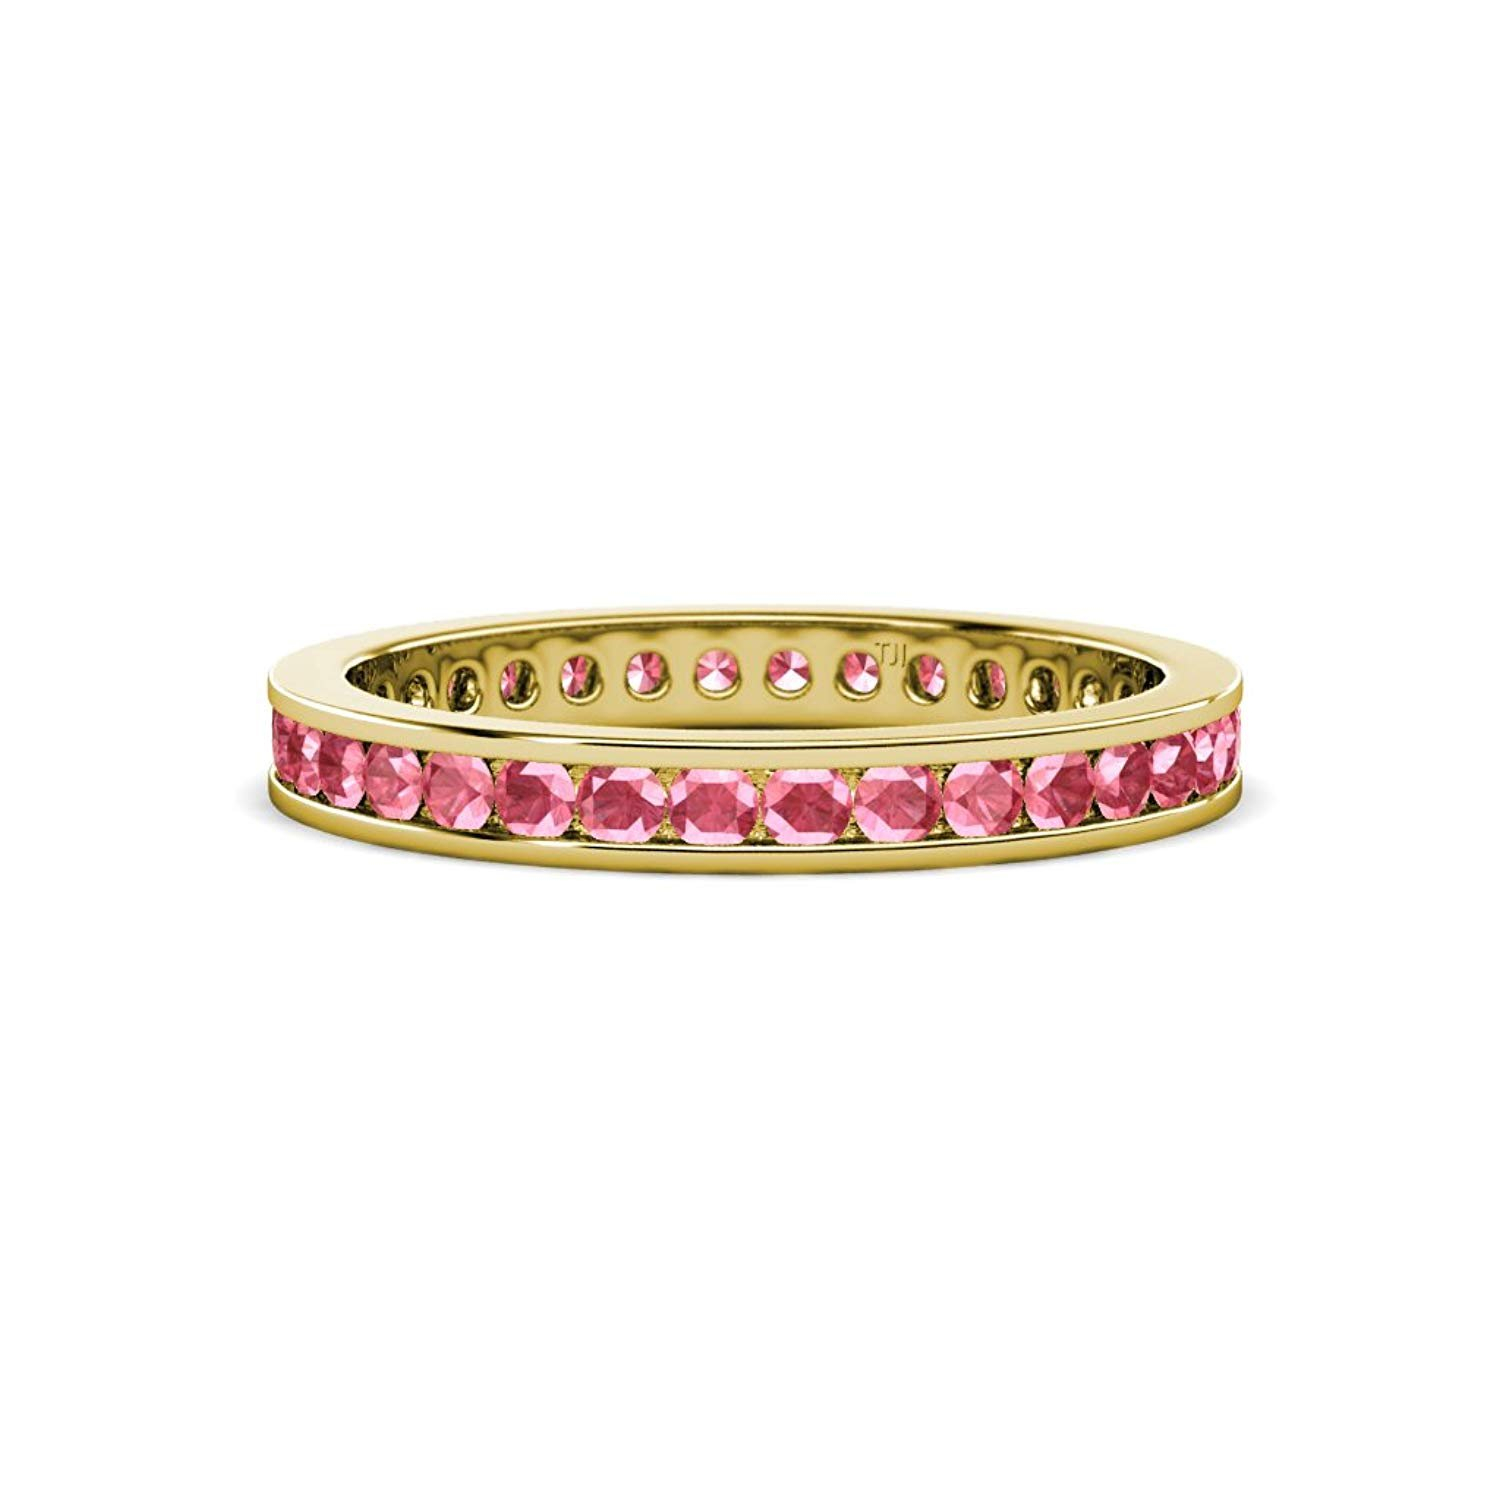 Pink Tourmaline 2mm Channel Set Eternity Band 0.59 Carat tw-0.70 Carat tw in 14K Yellow Gold.size 4.25 by TriJewels